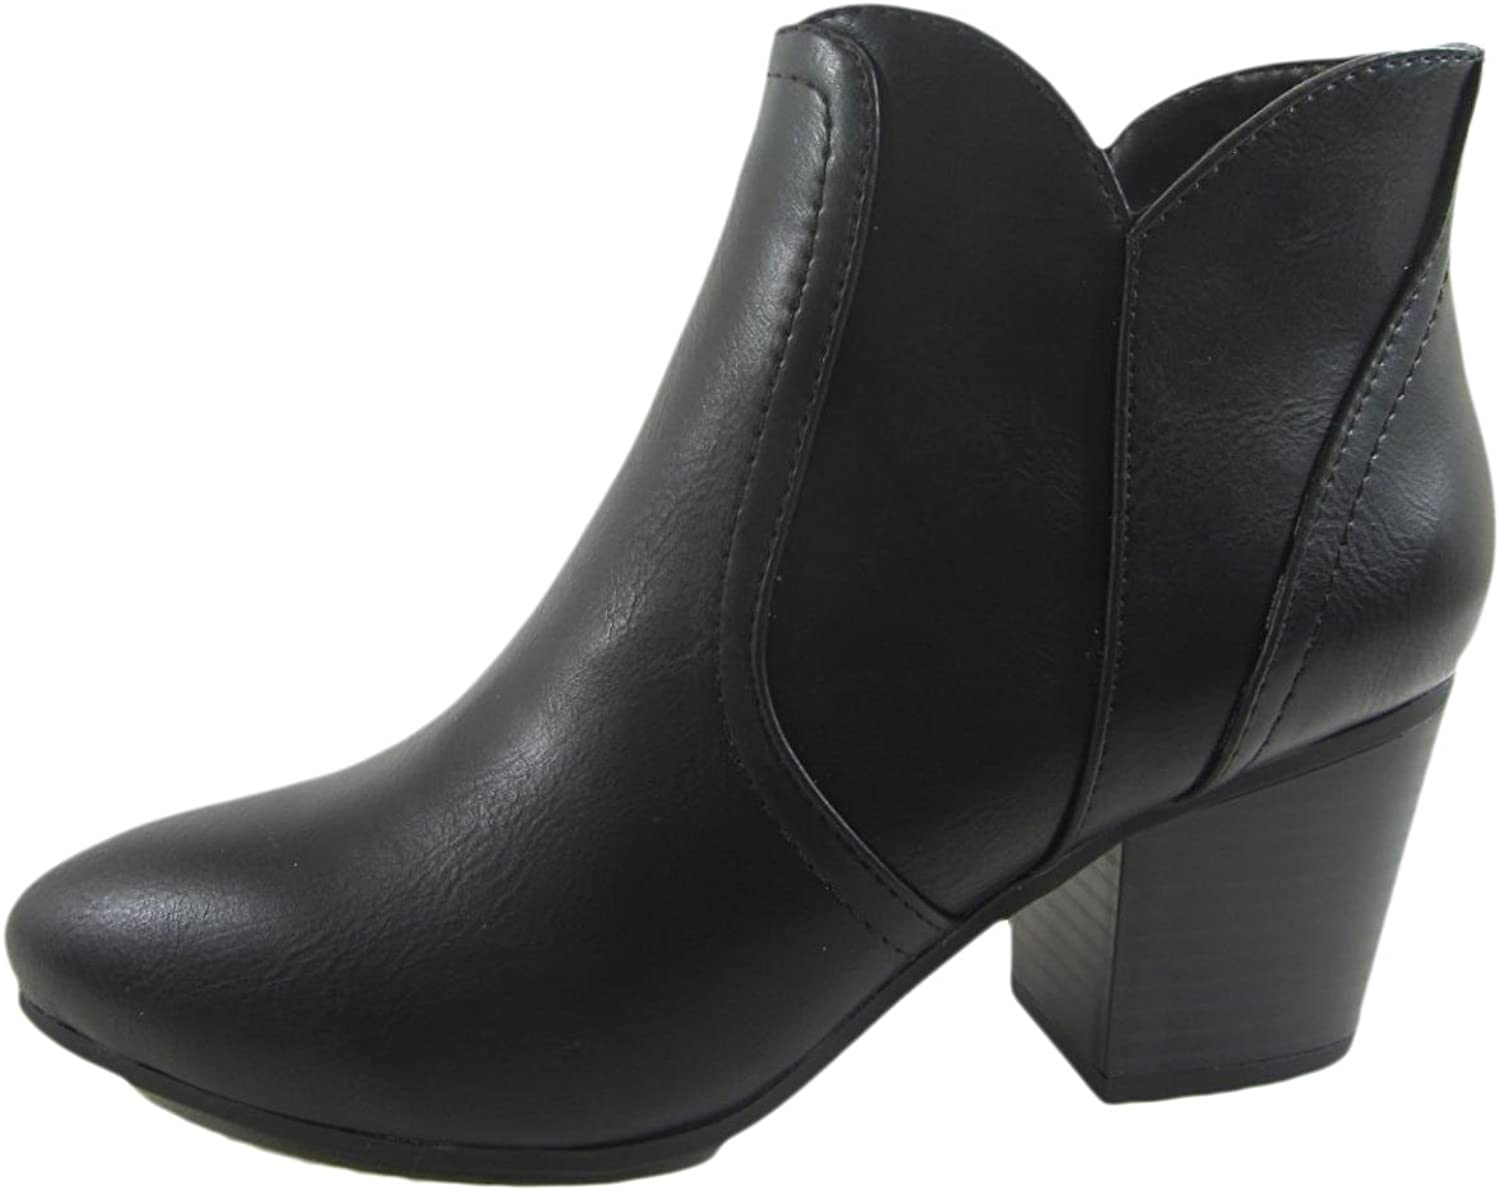 SODA Women's Newbury Leatherette Stacked Heel Ankle Booties